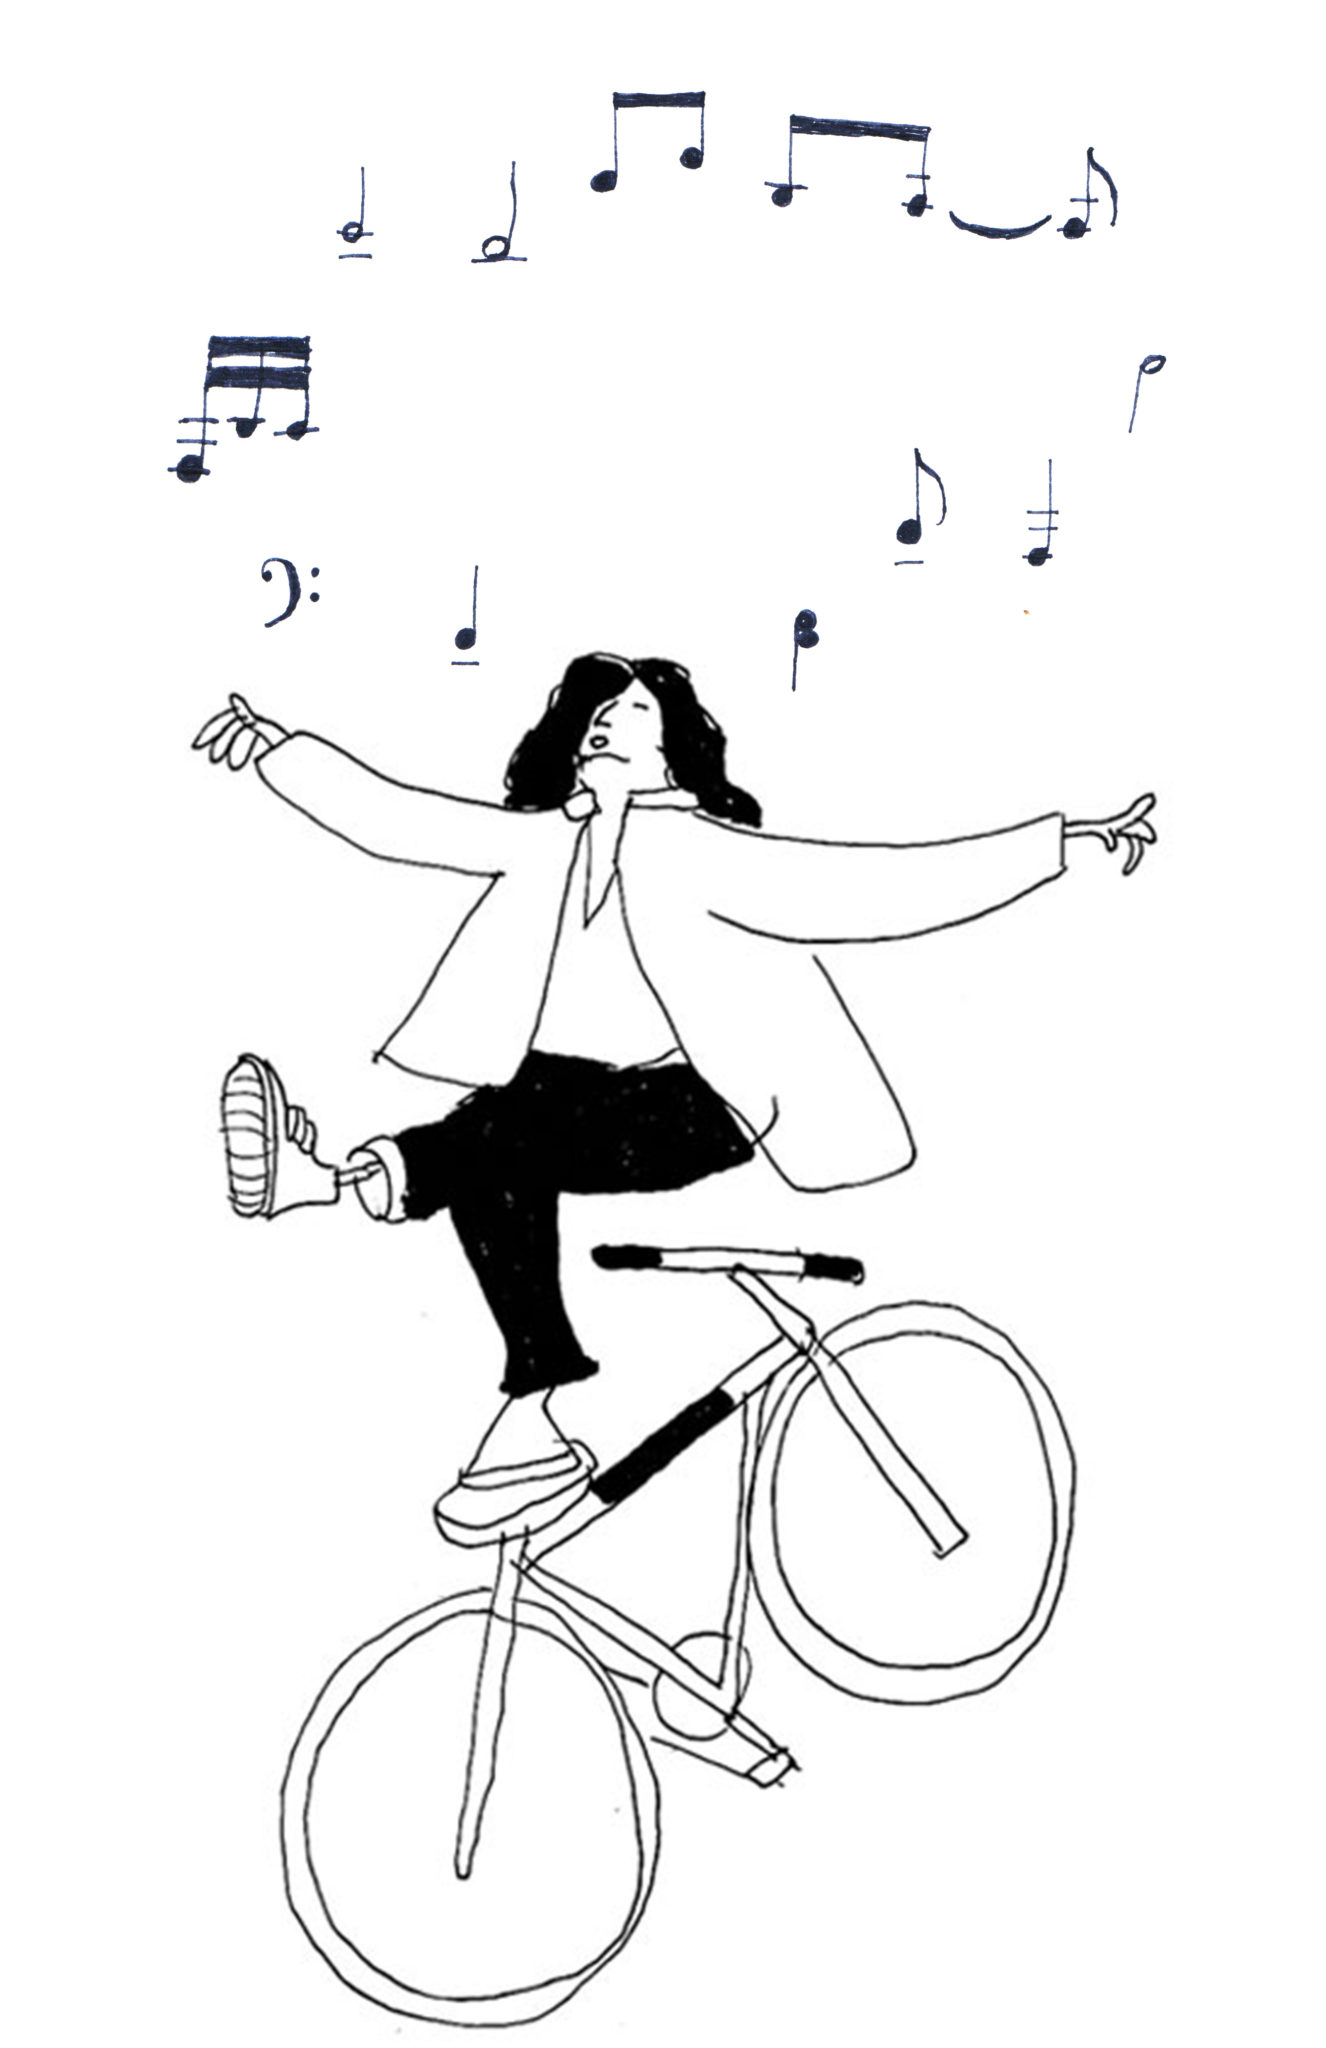 Wanted: Music For Bikes